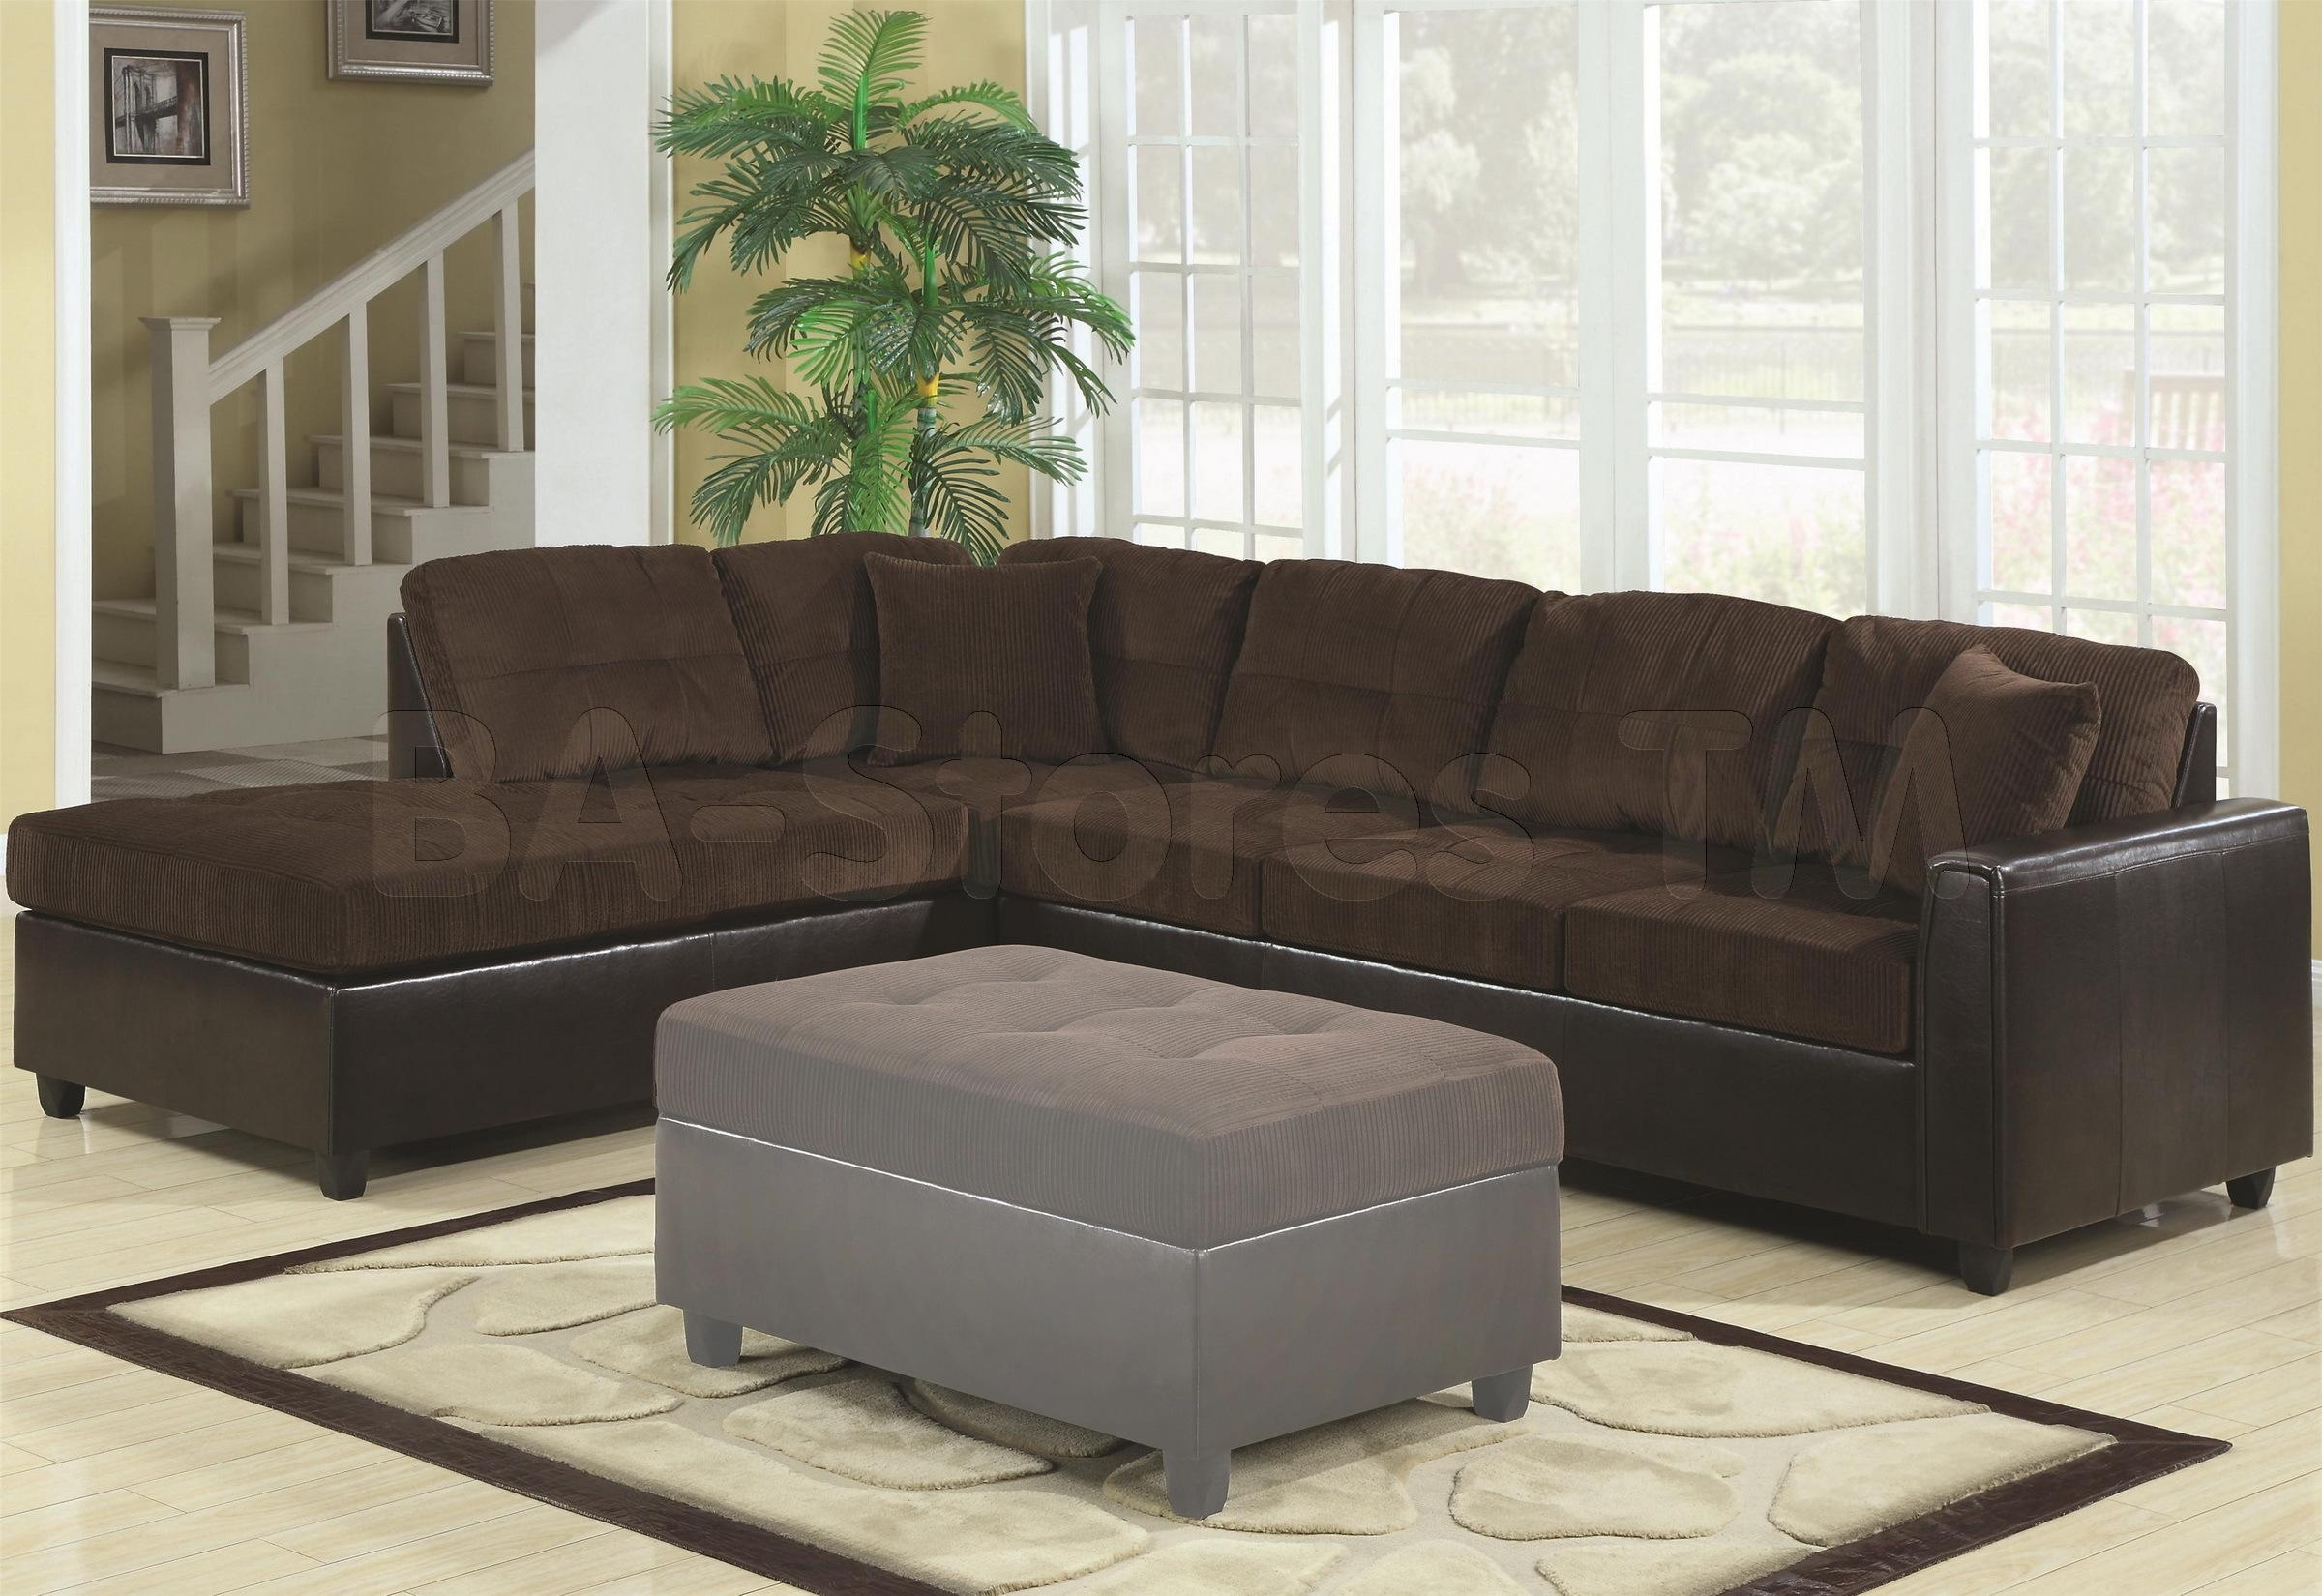 L Shaped Sectional Sofa Small – Ftfpgh Inside Small L Shaped Sectional Sofas (Image 8 of 20)